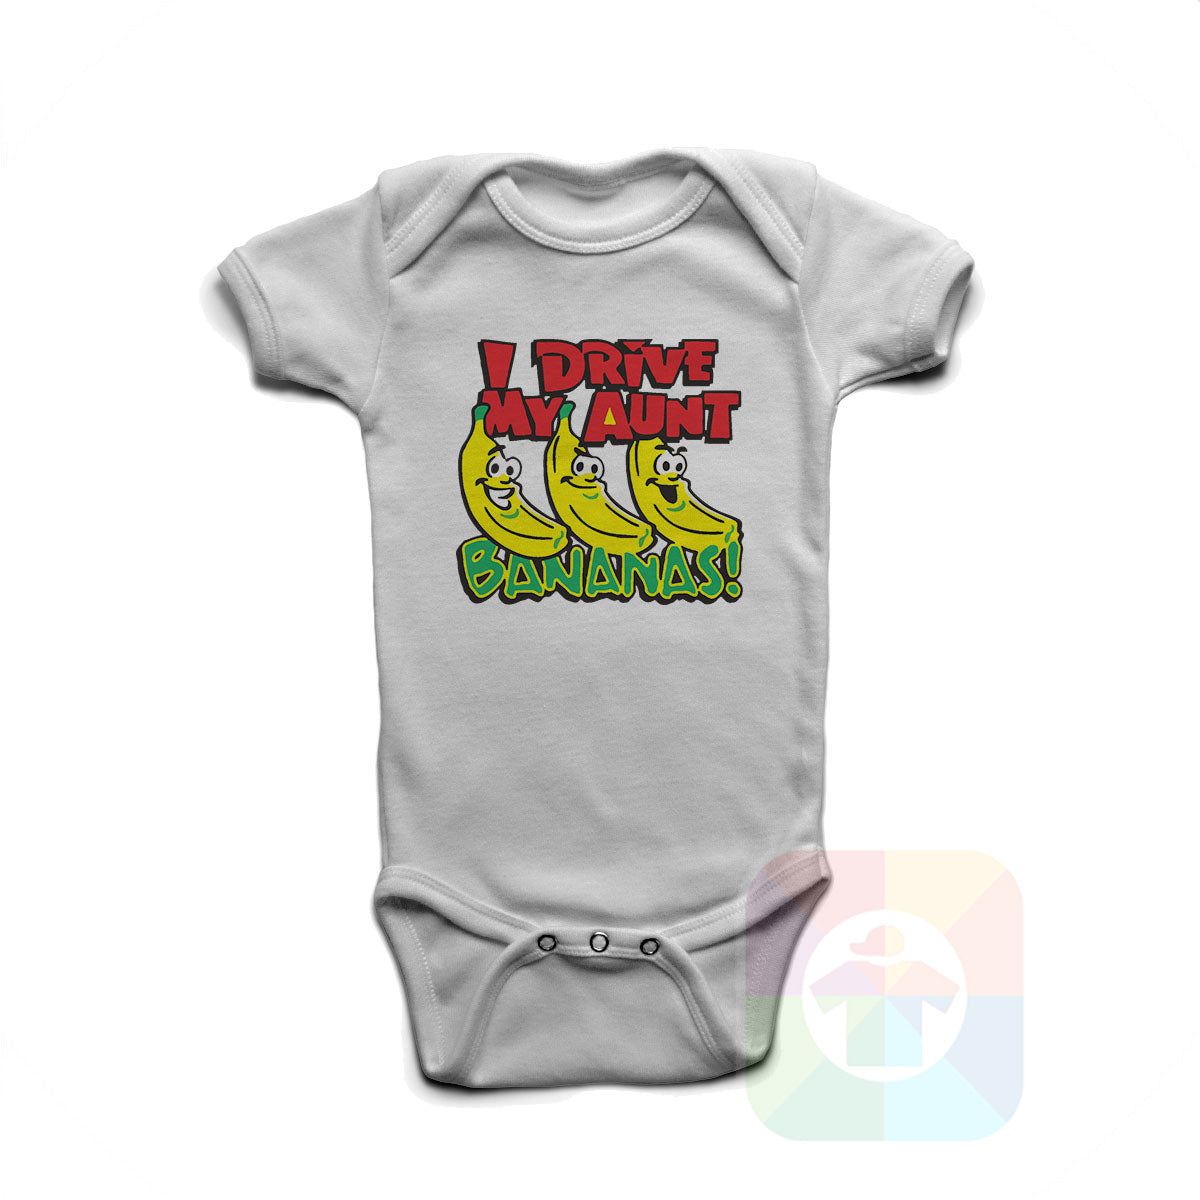 A WHITE Baby Onesie with the  ' Baby onesie 'I DRIVE MY AUNT BANANAS' kids funny novelty design. #8163 / New Born, 6m, 12m, 24m Sizes ' design.